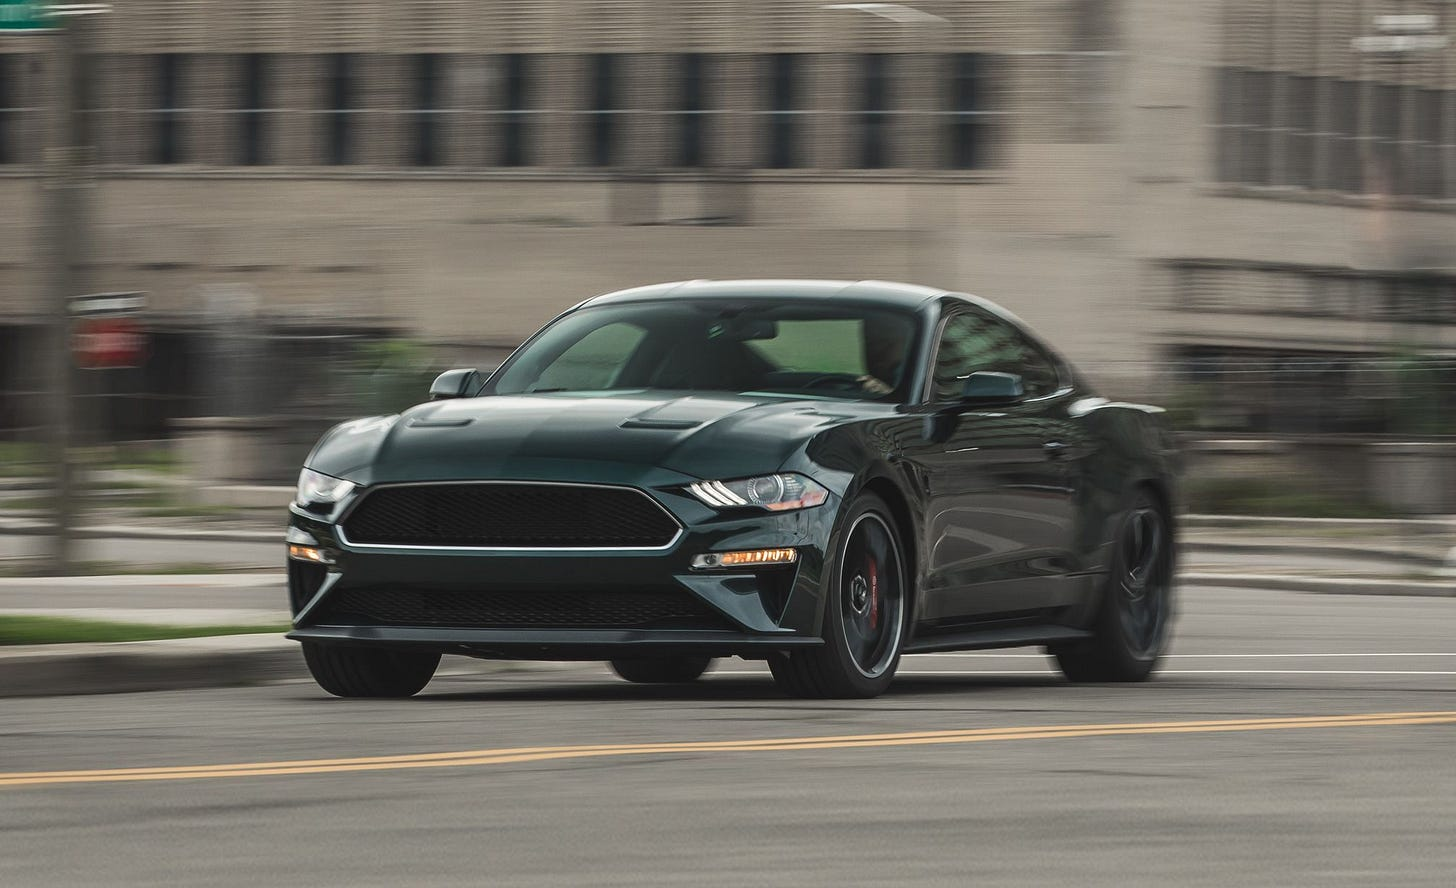 2019 Ford Mustang Review, Pricing, and Specs